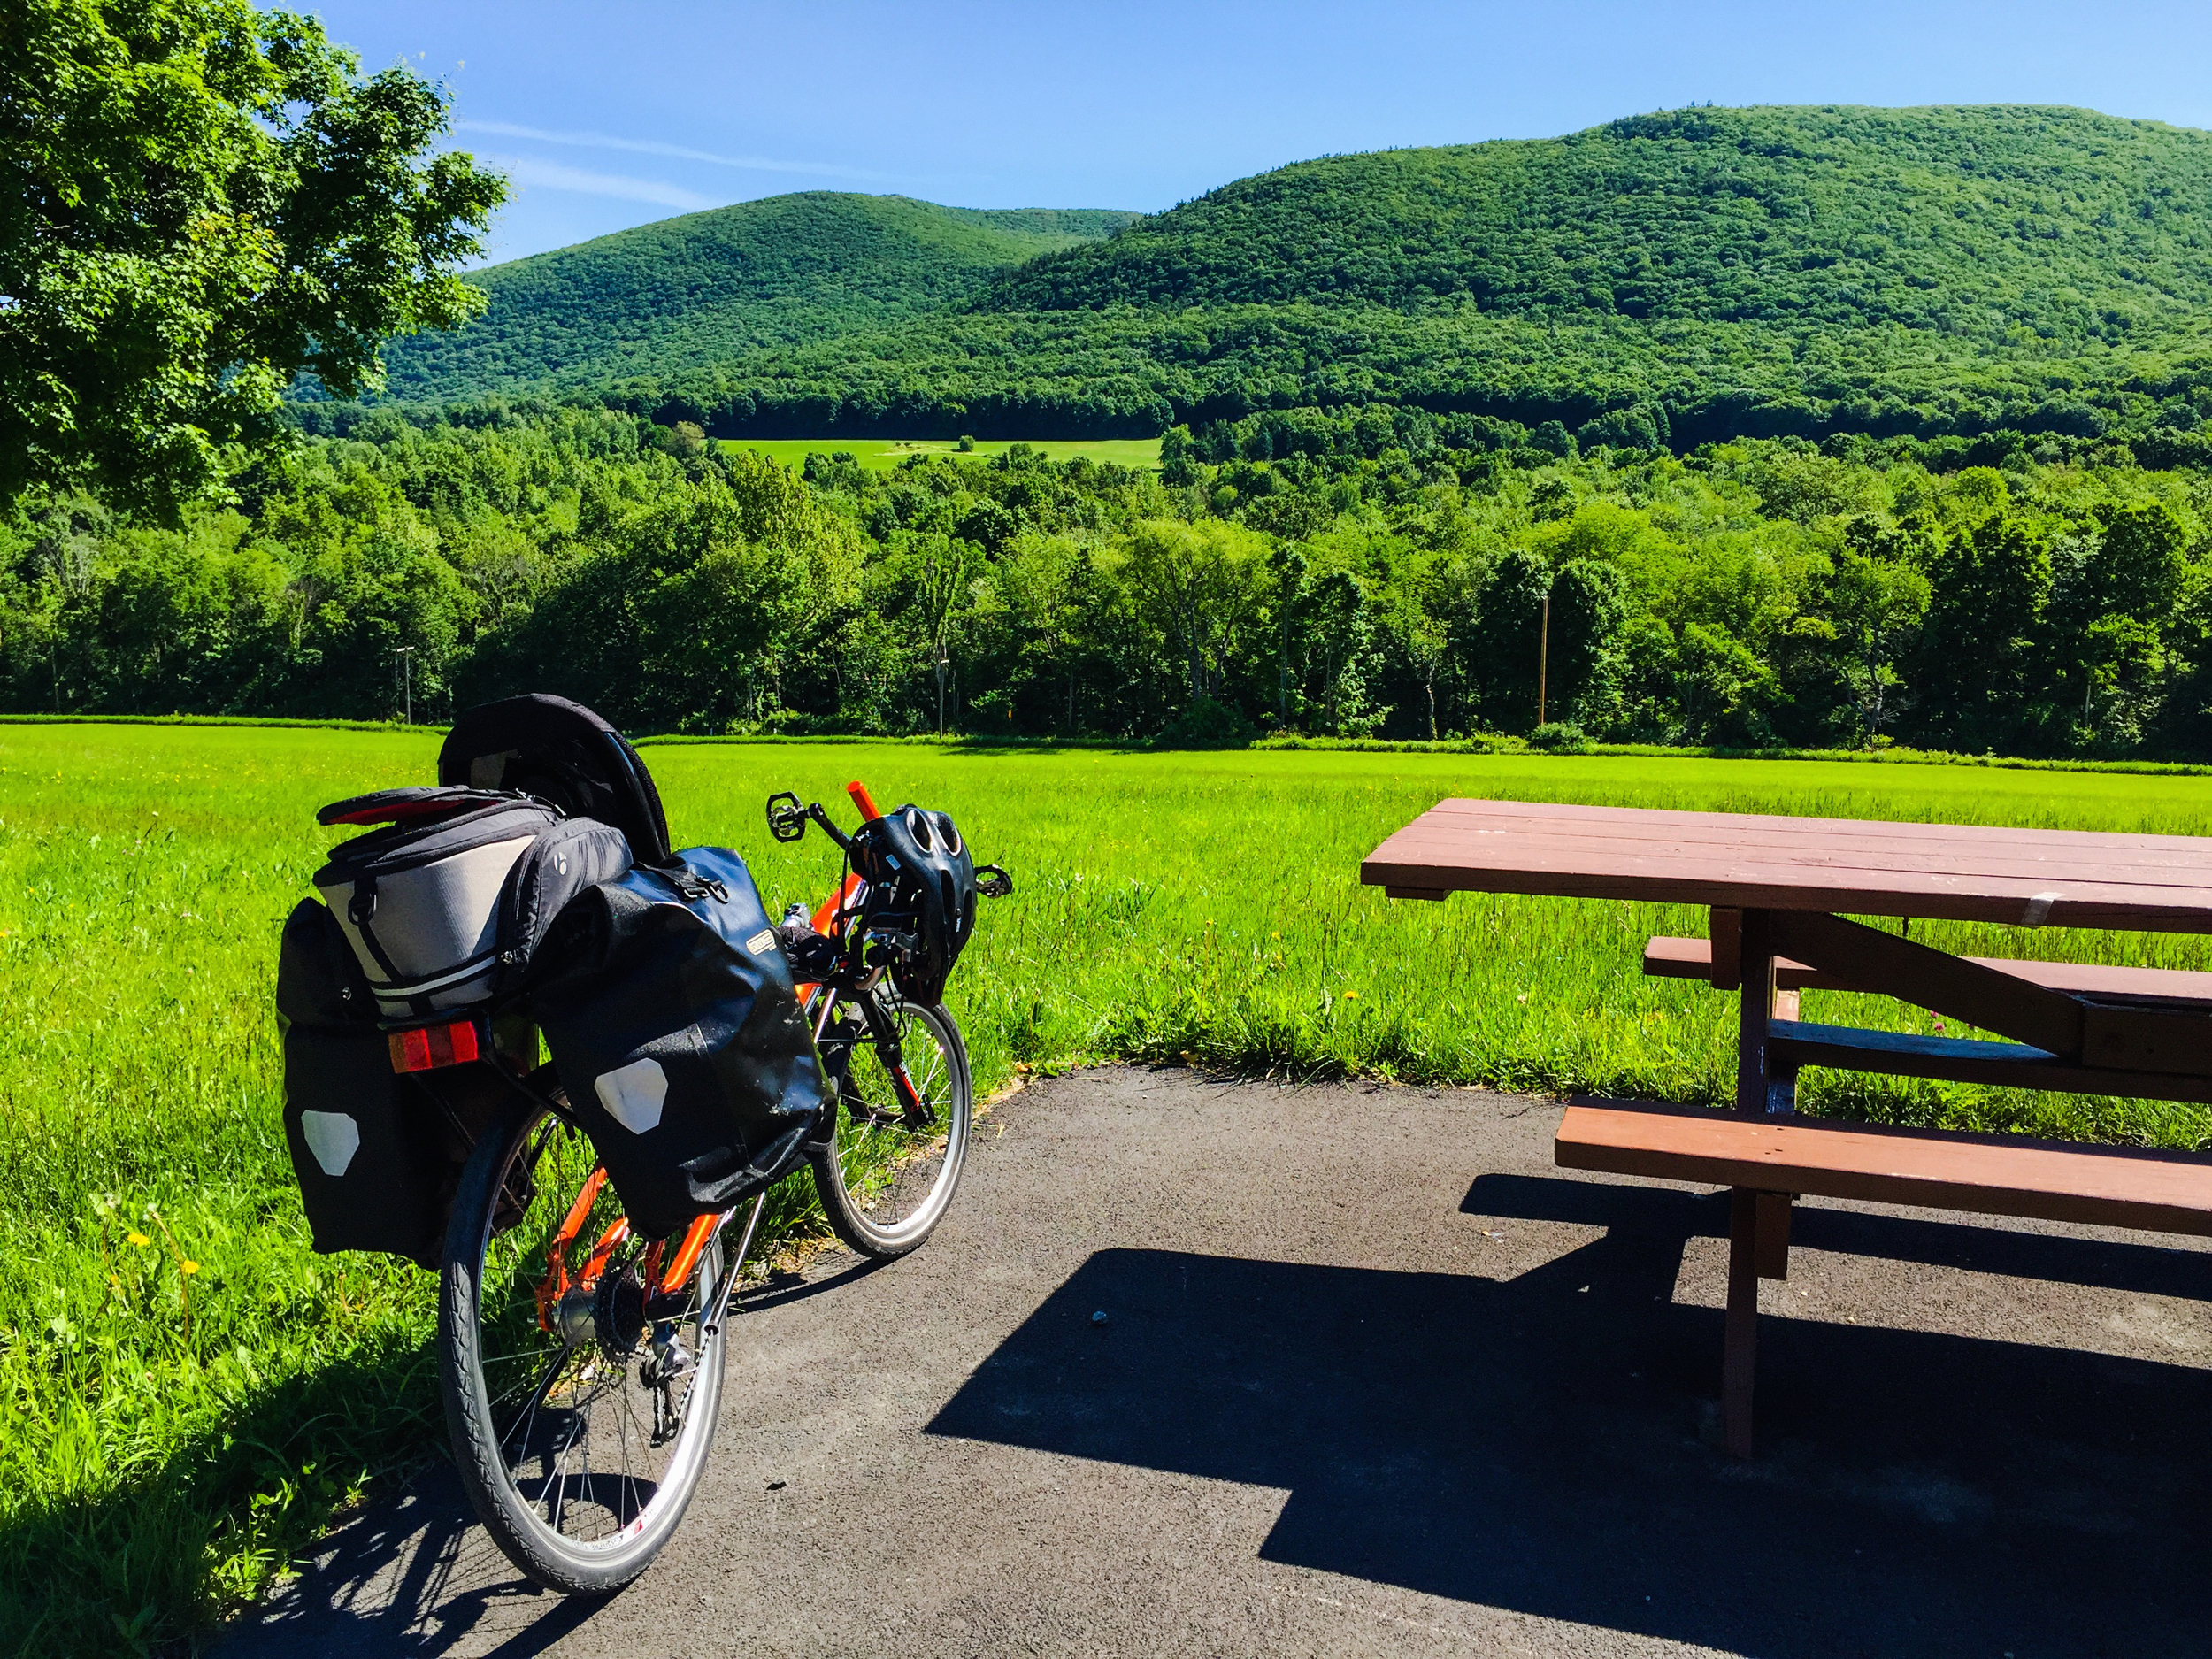 My Streetmachine on a weekend self-supported overnighter through the Taconic Range of eastern New York.